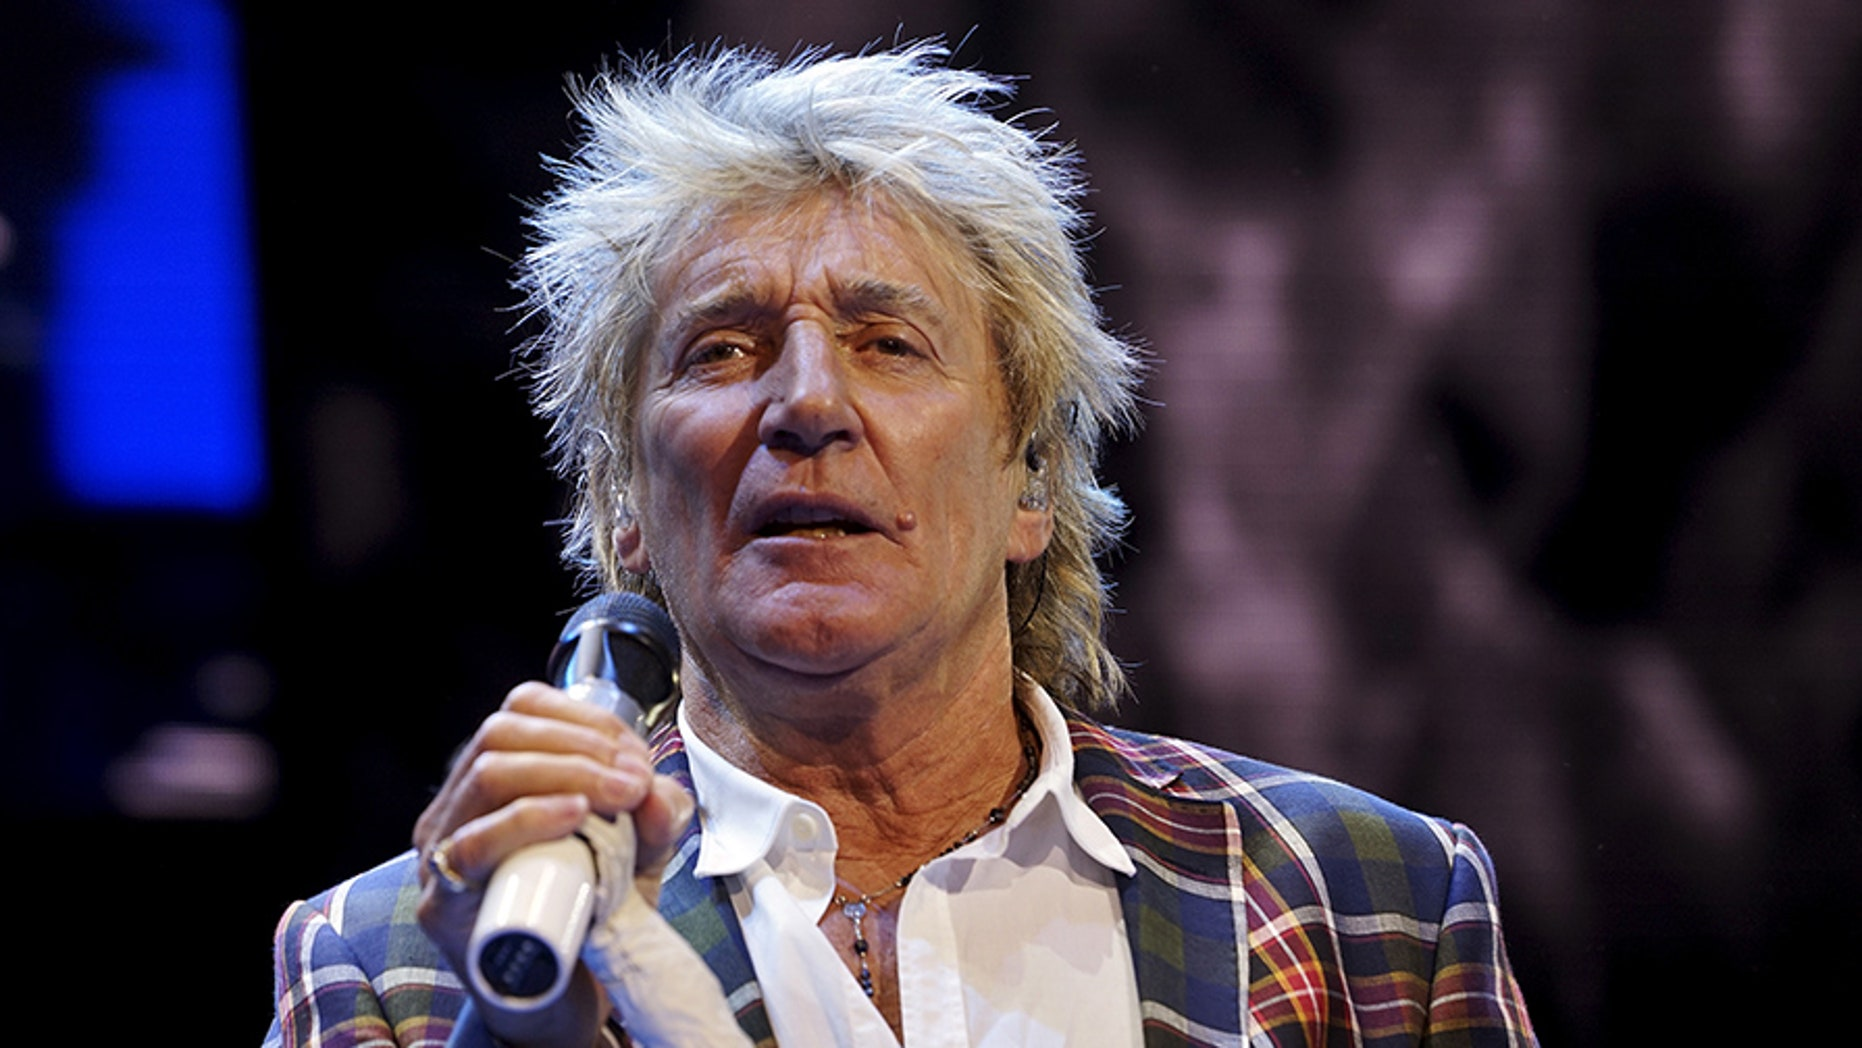 Rod Stewart opened up about his womanizing past.